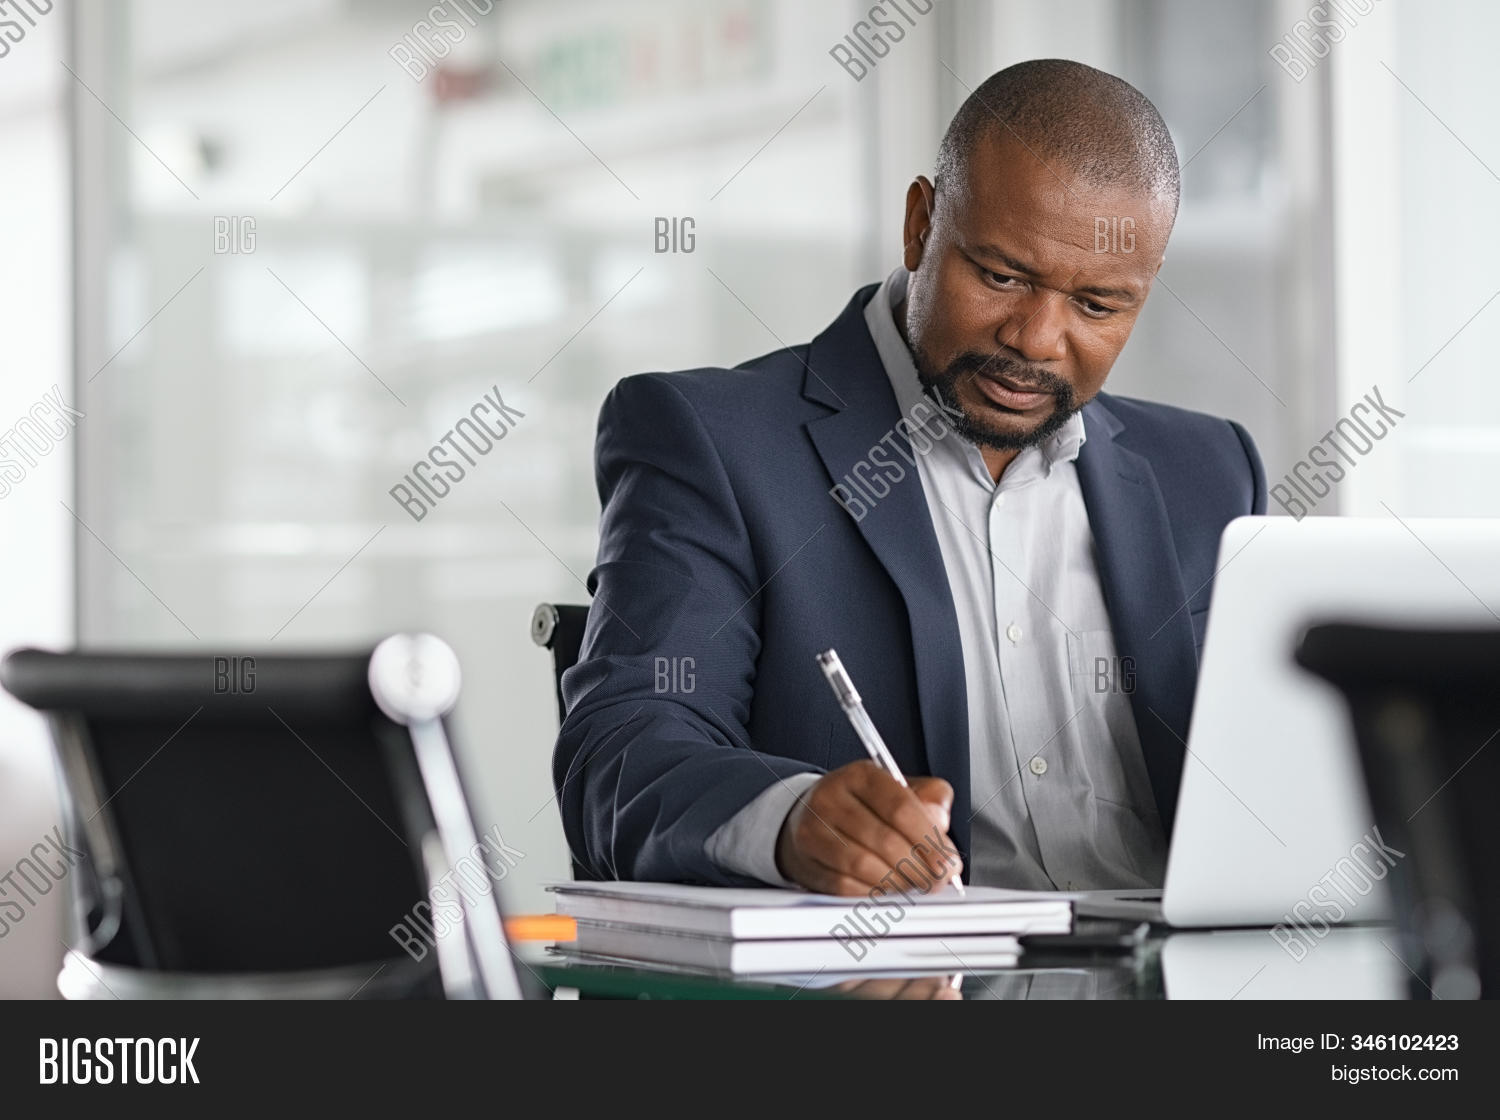 african,african business man,agency,american,black,black entrepreneur,book,business,business documents,business man,businessman,busy,commitment,computer,concentrated,concentration,consultant,copy space,corporate,desk,document,employee,entrepreneur,executive,focused man,laptop,manager,mature,modern,modern office,note,occupation,office,one,pen,professional,project,real people,research,result,serious,serious man,sitting,sitting at desk,strategy,taking,work,working on computer,writing,writing notes